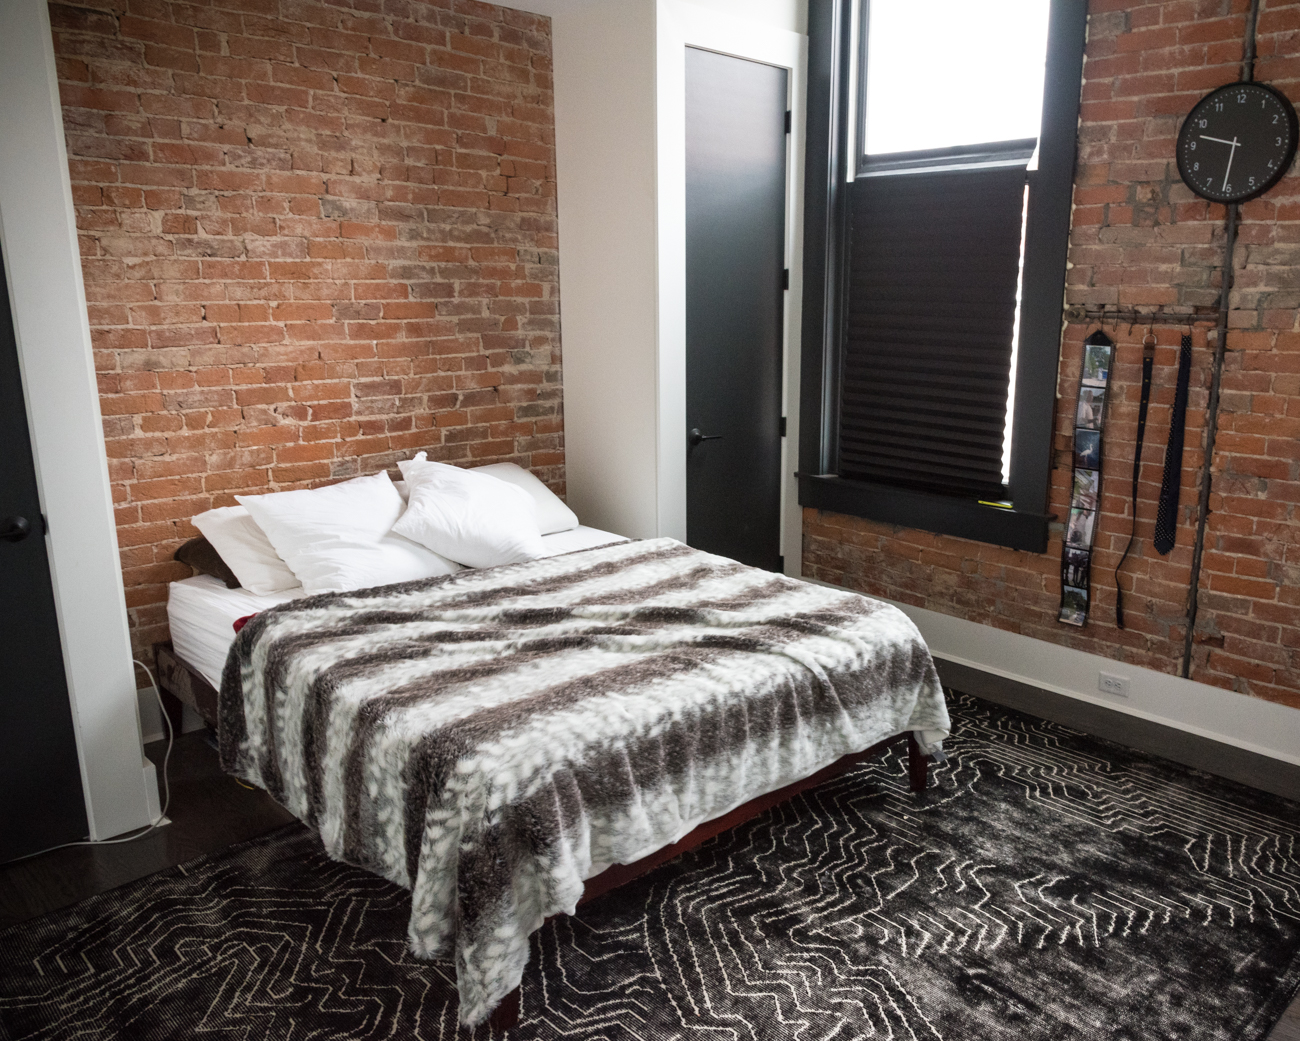 Complete with nine town homes, Boone Block (originally built in 1872) is one of Covington's newest living spaces. It's filled with exposed brick, tall ceilings, and plenty of old & new features. Unit 420 (pictured) was recently purchased. ADDRESS: 406-422 Scott Blvd Covington, KY 41011 / Image: Phil Armstrong, Cincinnati Refined / Published: 2.27.17